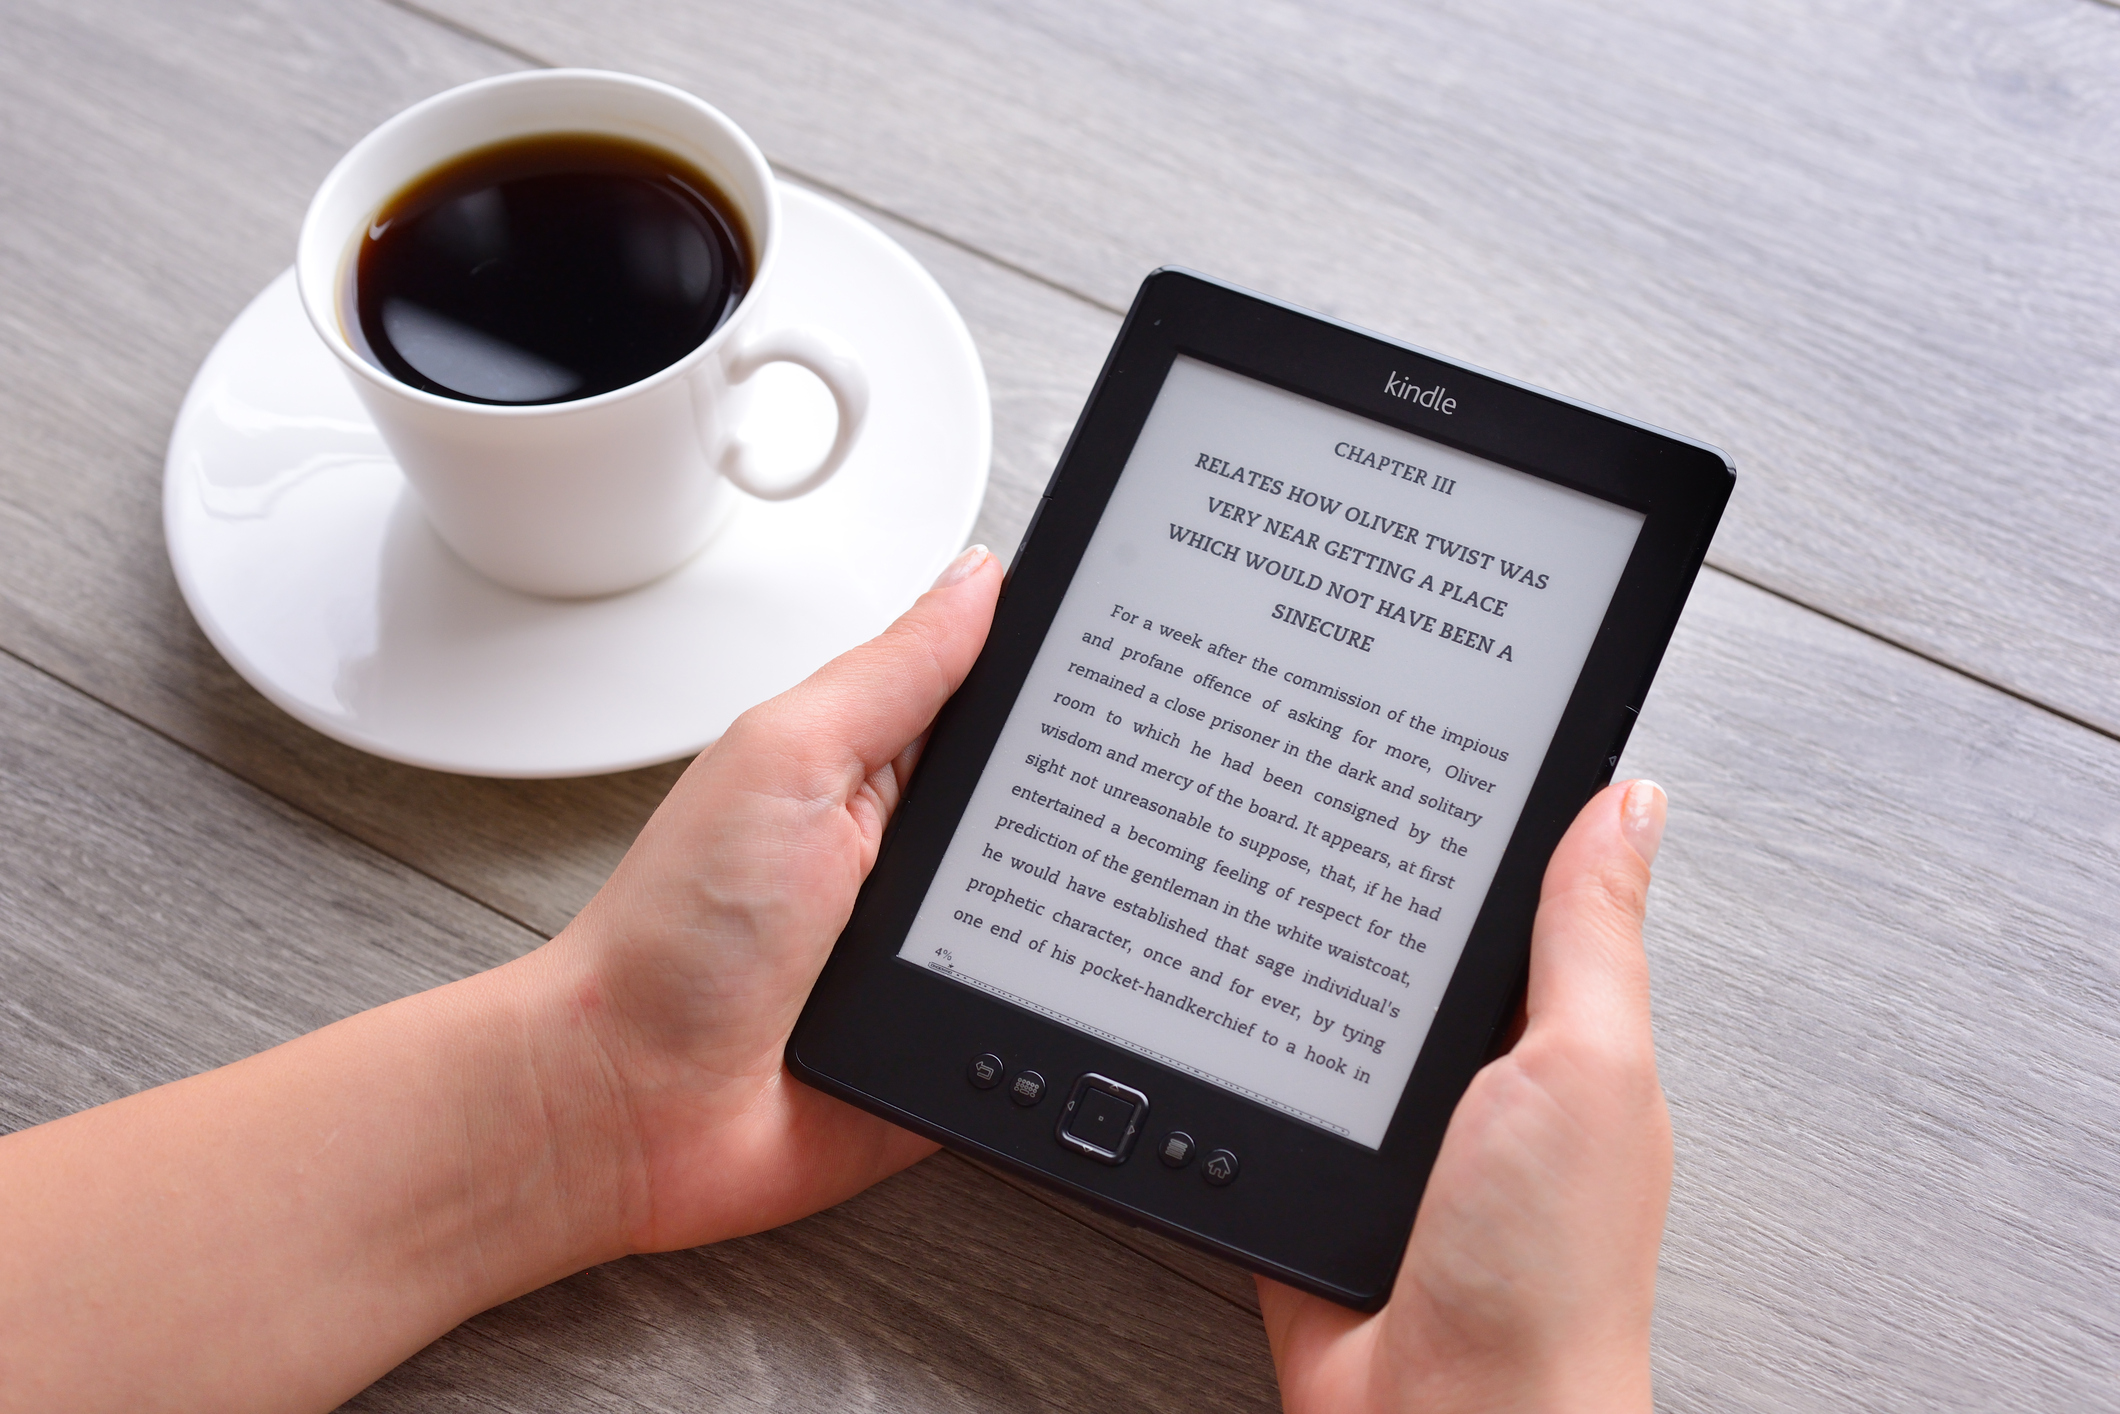 Enjoy your favourite reads on vacation with ebooks